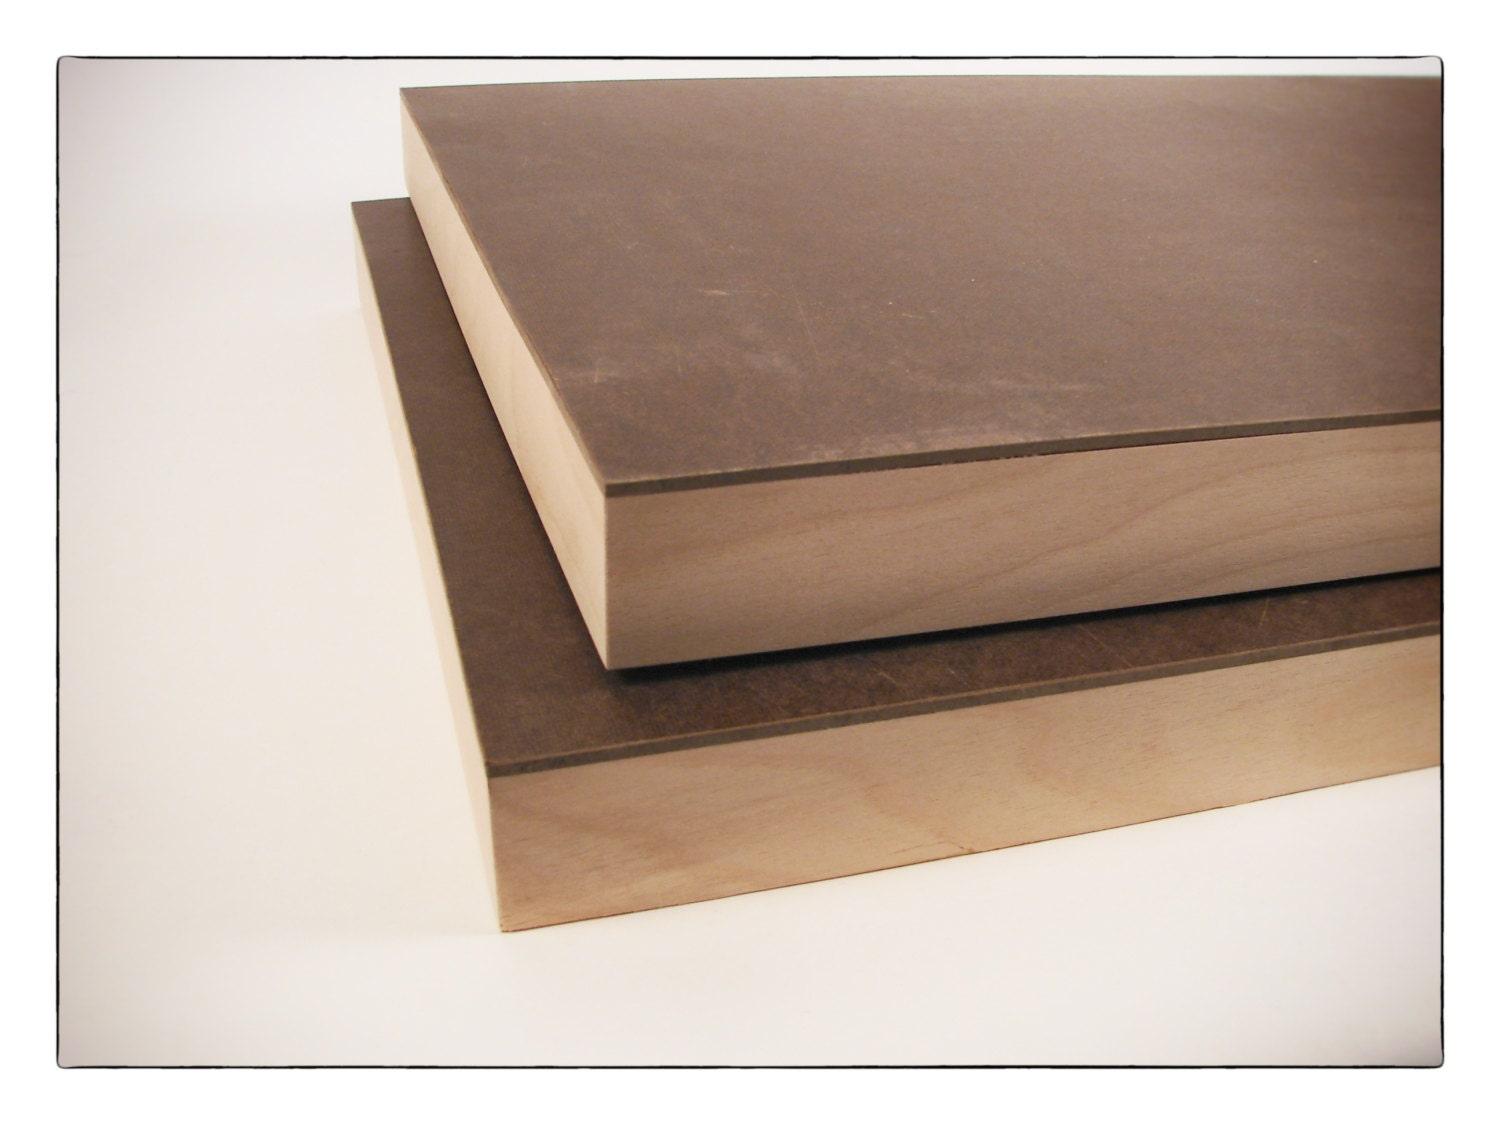 Hardboard Panel For Painting ~ Items similar to set of plywood painting panels